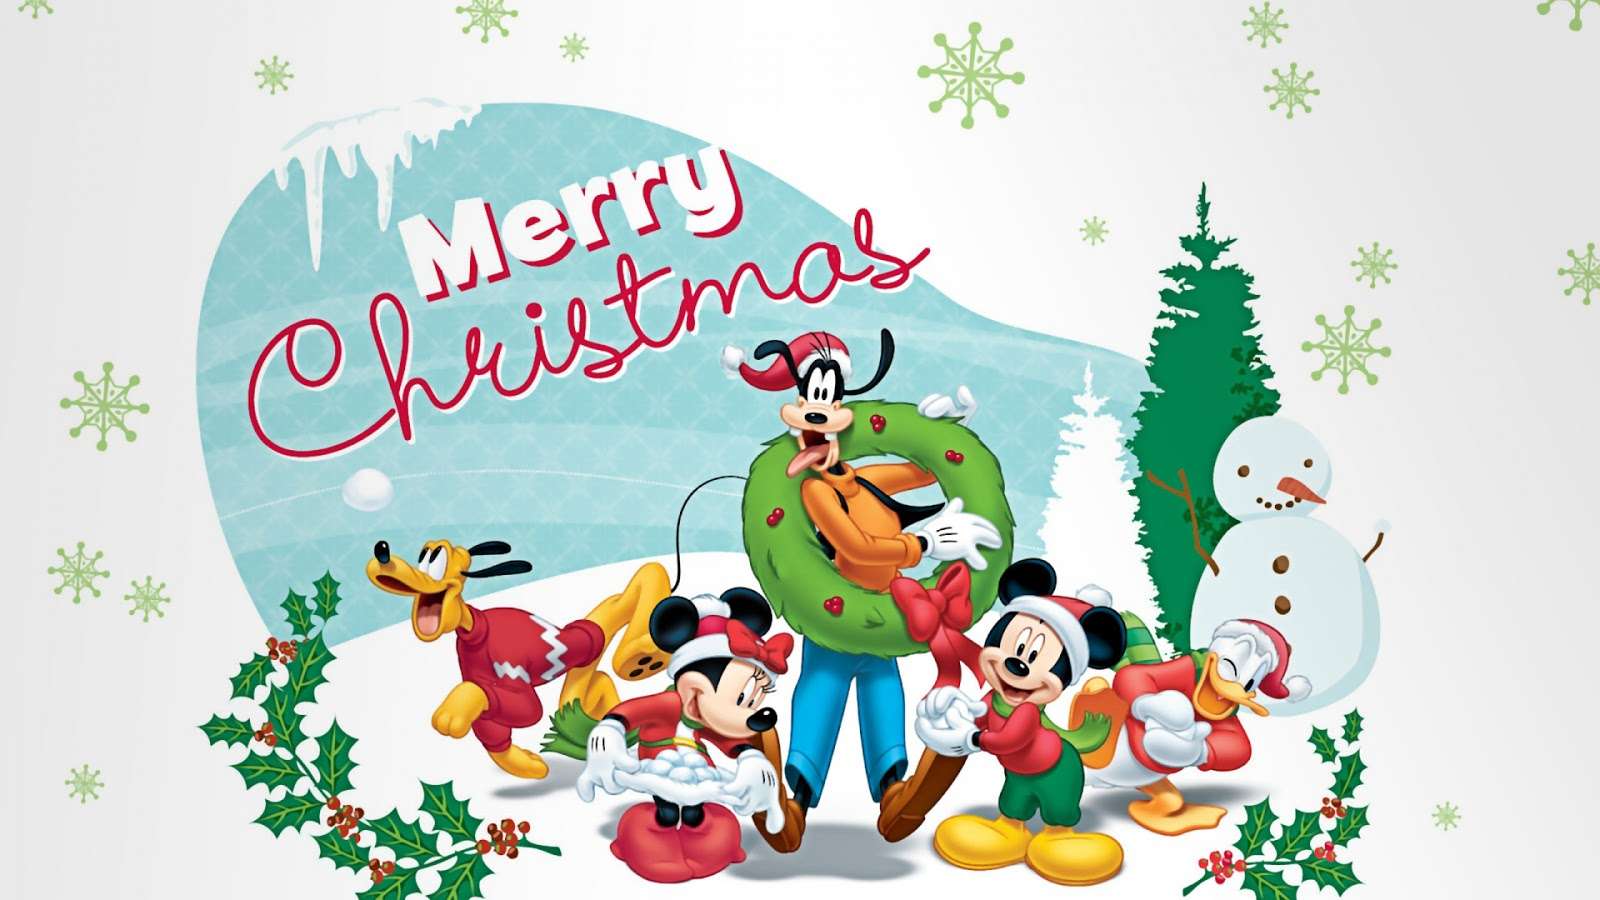 Wallpaper Mansion Disney Christmas Wallpapers 1600x900